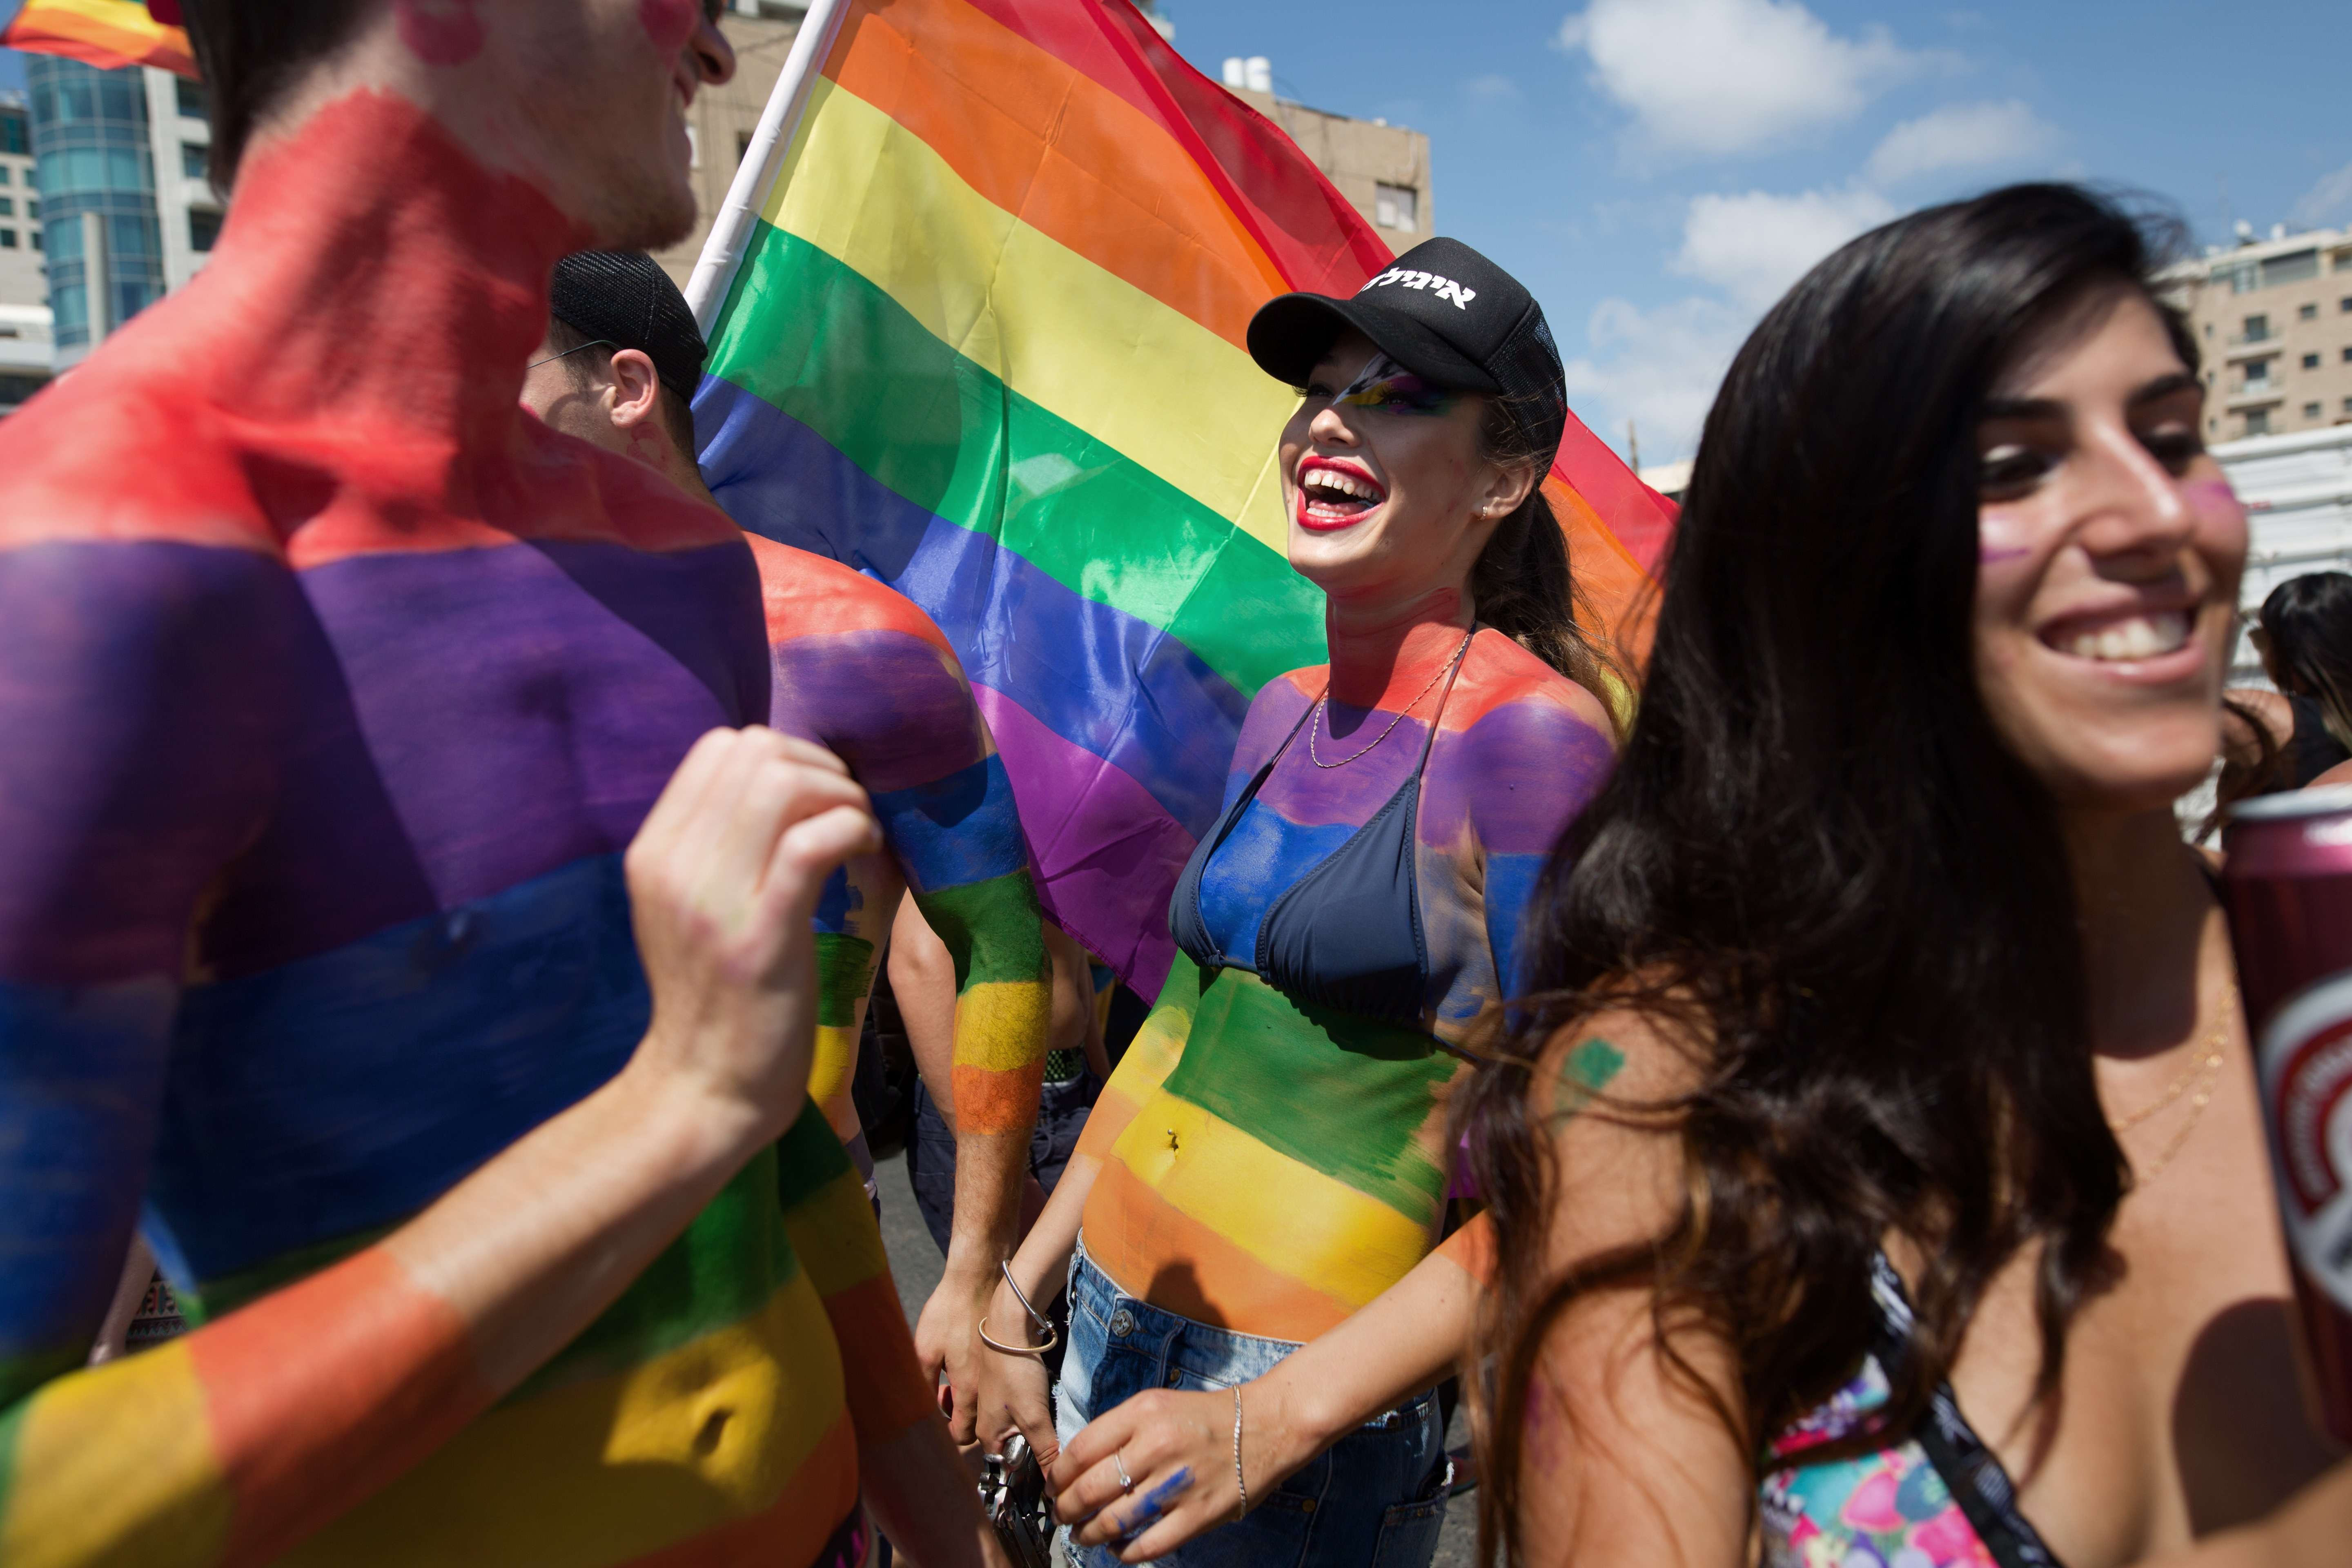 Israelis and foreigners celebrate during the 17th annual gay pride parade in Tel Aviv on June 12, 2015.